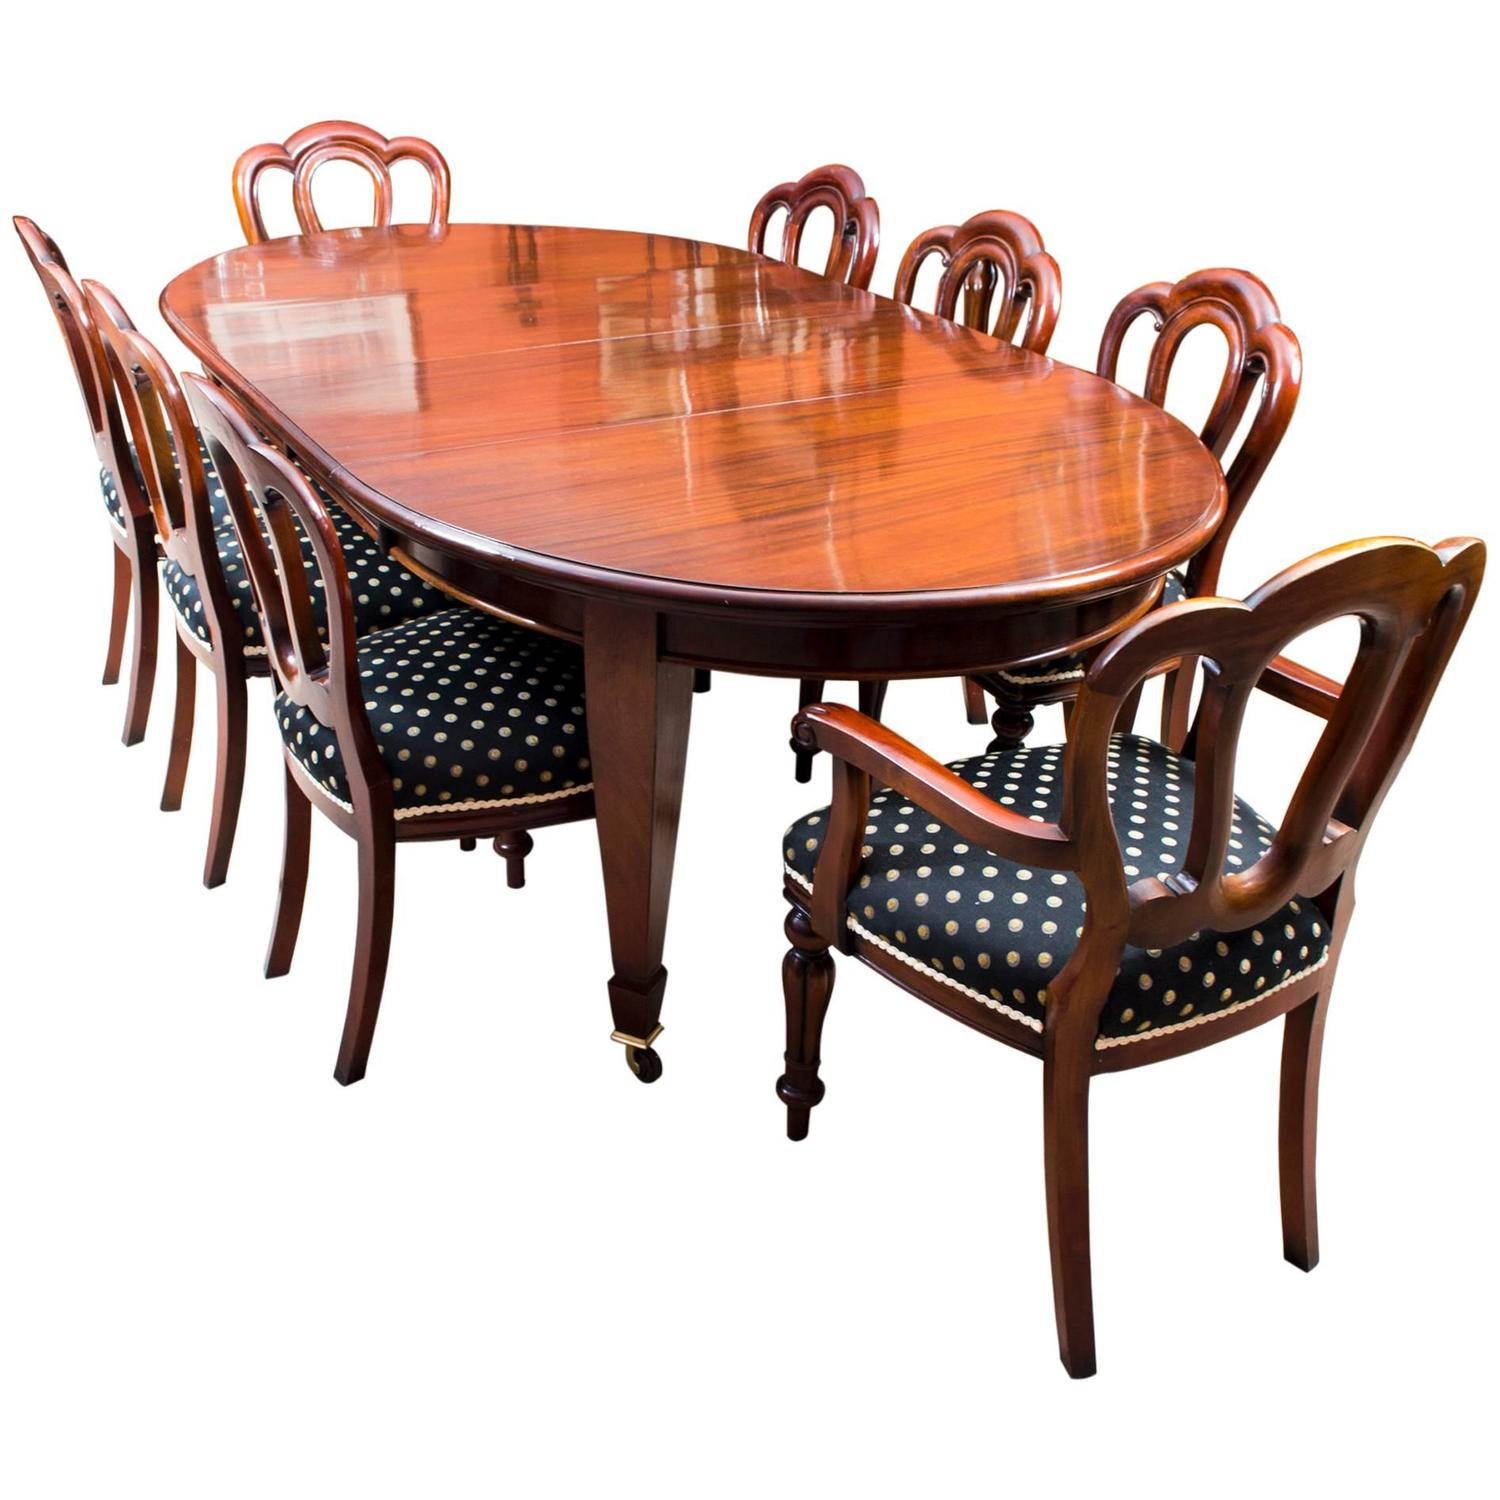 Antique edwardian dining table eight chairs circa 1900 at for Antique dining room furniture